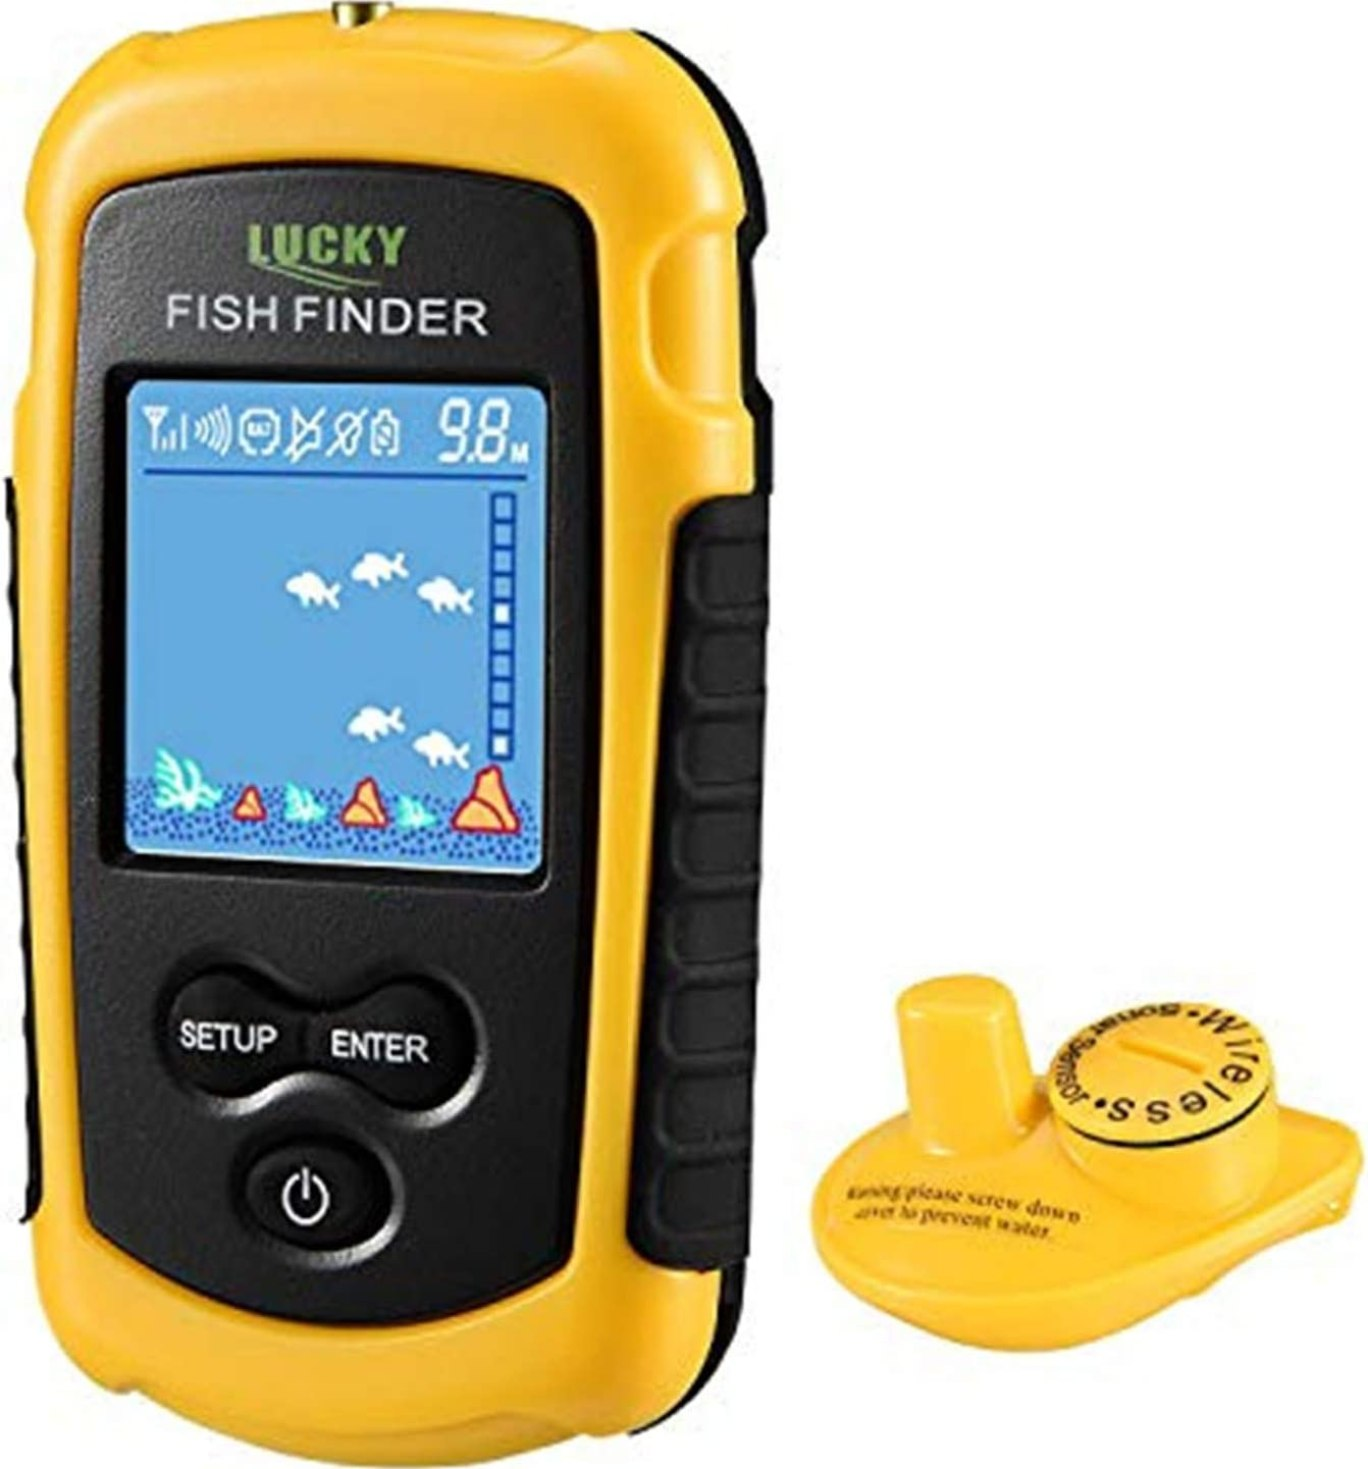 LUCKY Portable Wireless Fish Finder review